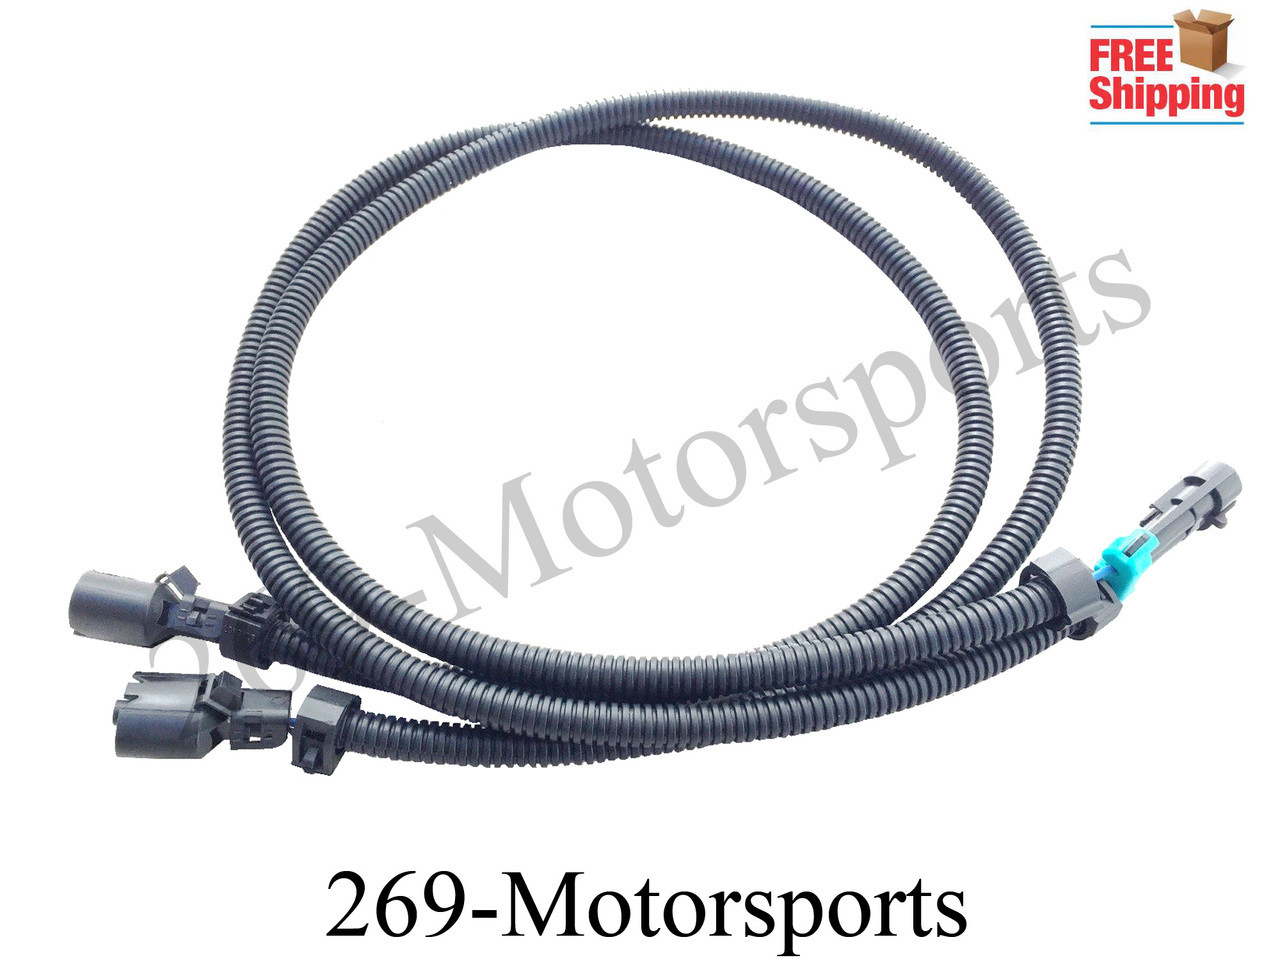 knock sensor extension wiring harness for ls1 ls6 to ls2 conversion adapter gm [ 1280 x 960 Pixel ]